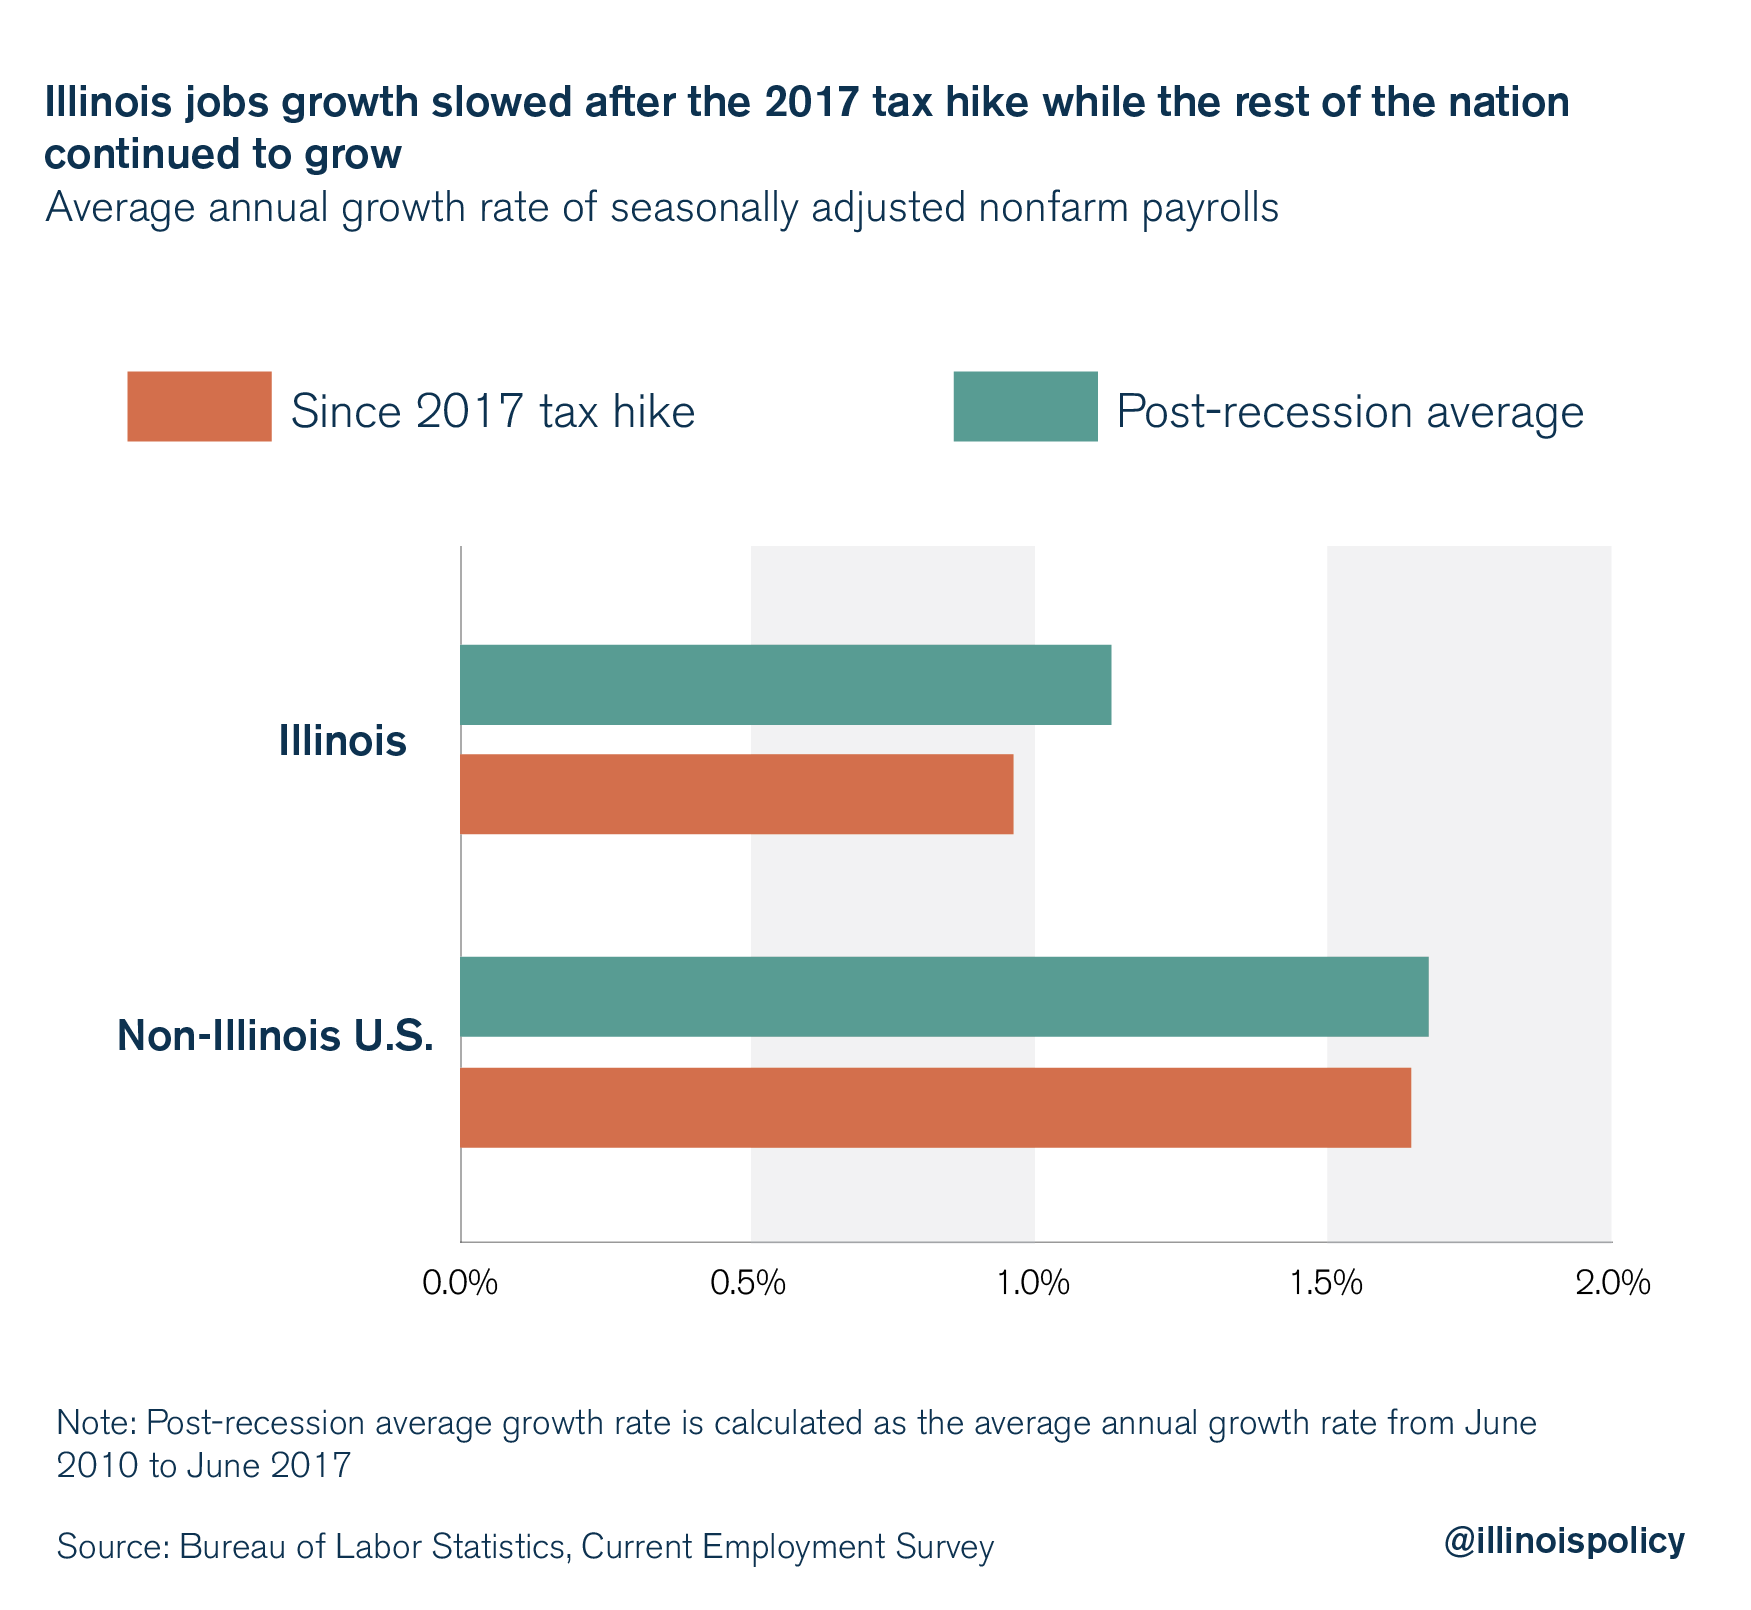 Illinois jobs growth slowed after the 2017 tax hike while the rest of the nation continued to grow